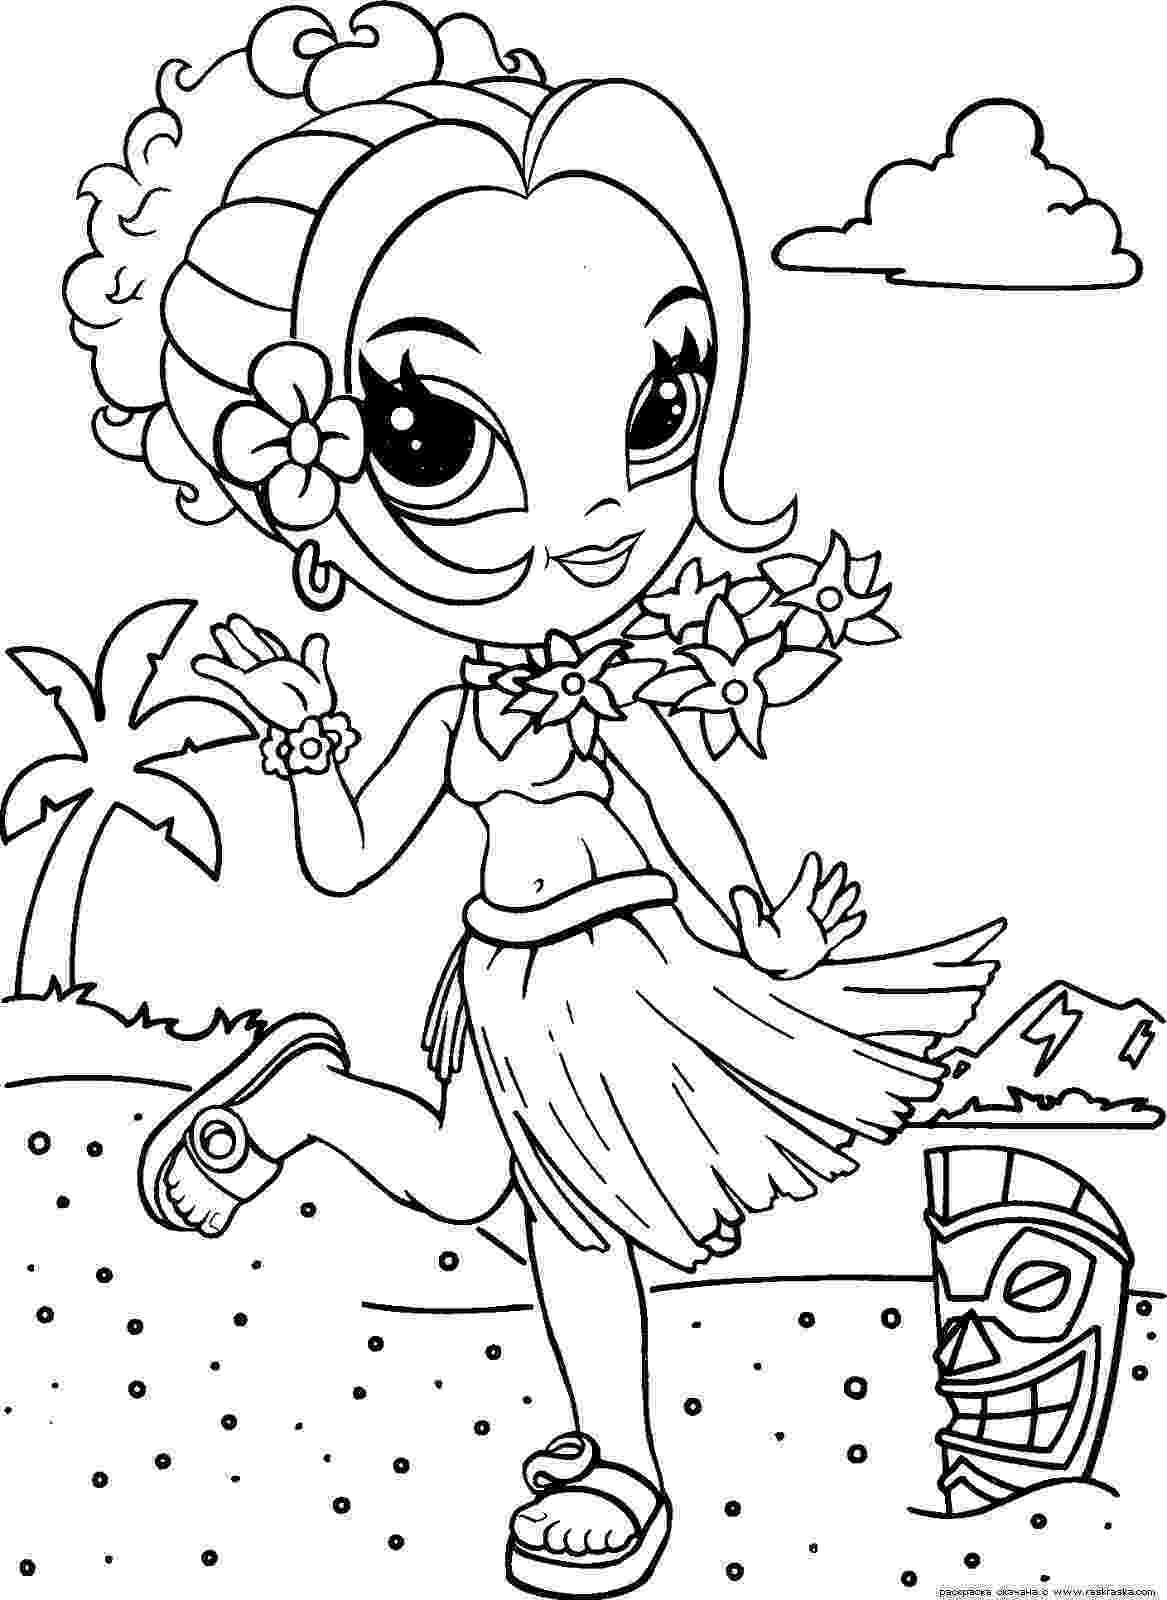 coloring pages for free giraffes coloring pages to download and print for free for free pages coloring